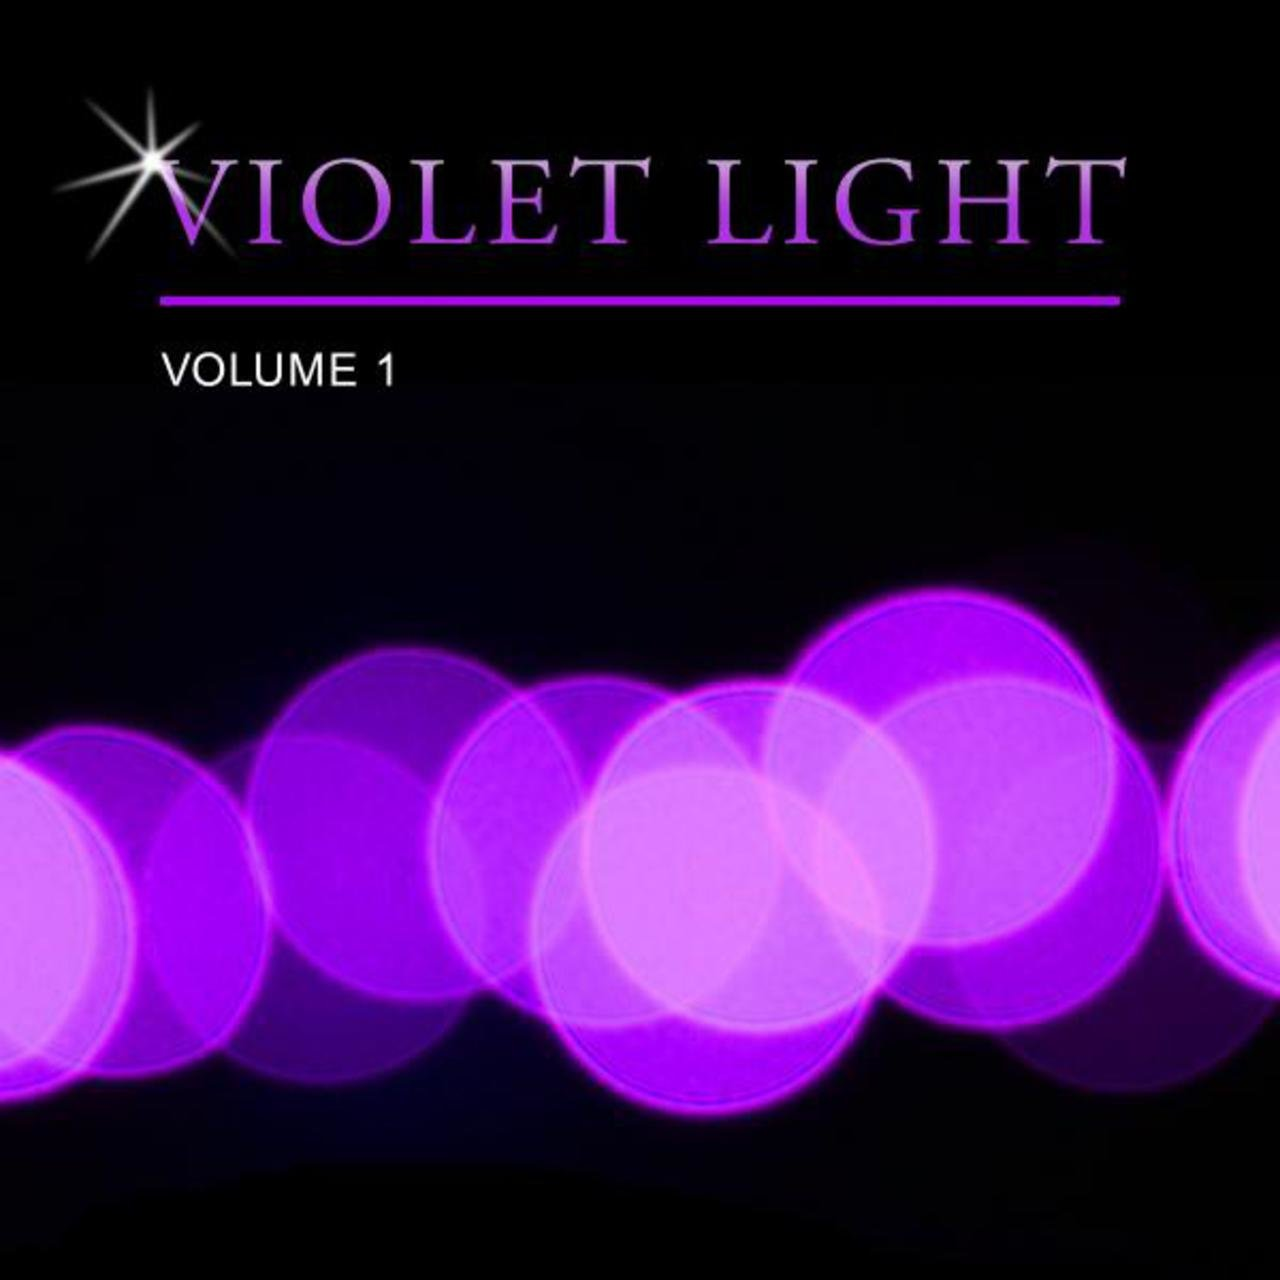 Violet Light, Vol. 1